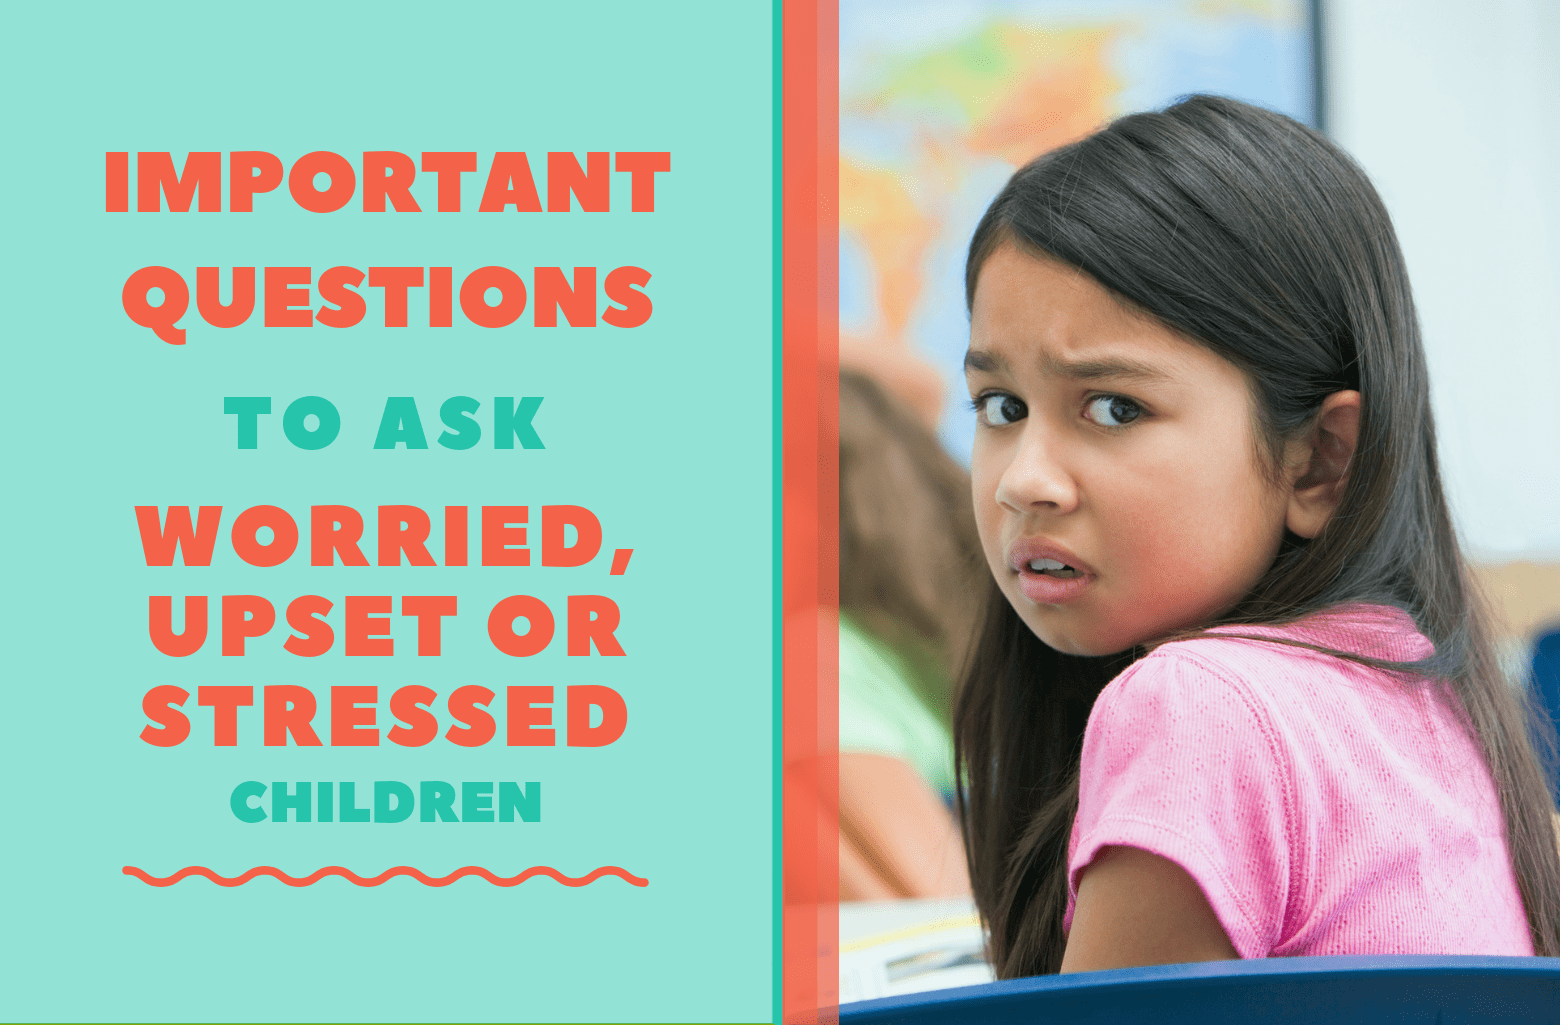 questions to ask worried upset stressed kids